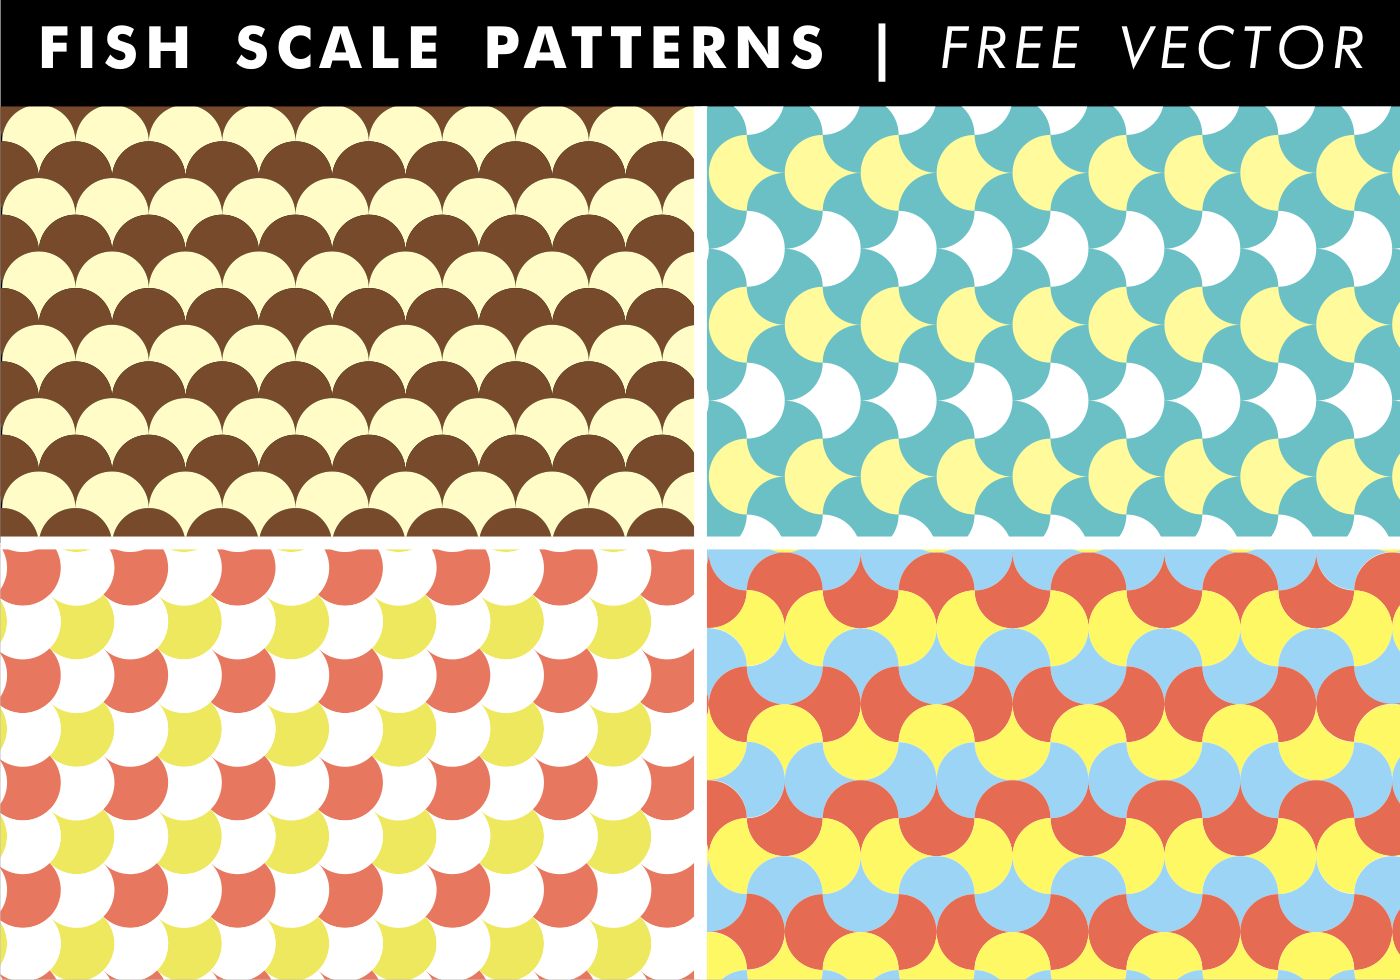 12 Fish Scale Pattern Vector Images - Fish Scale Pattern